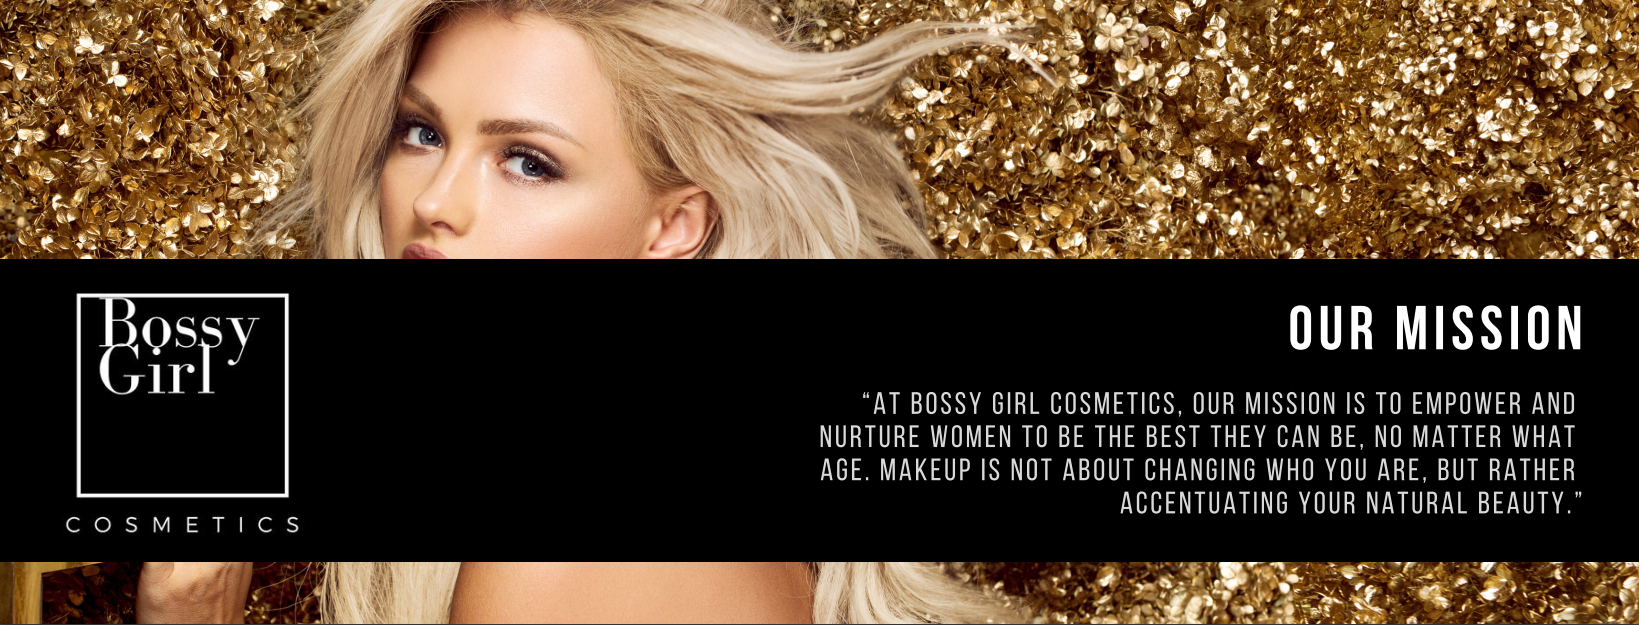 Bossy Girl Cosmetics Mission Statement